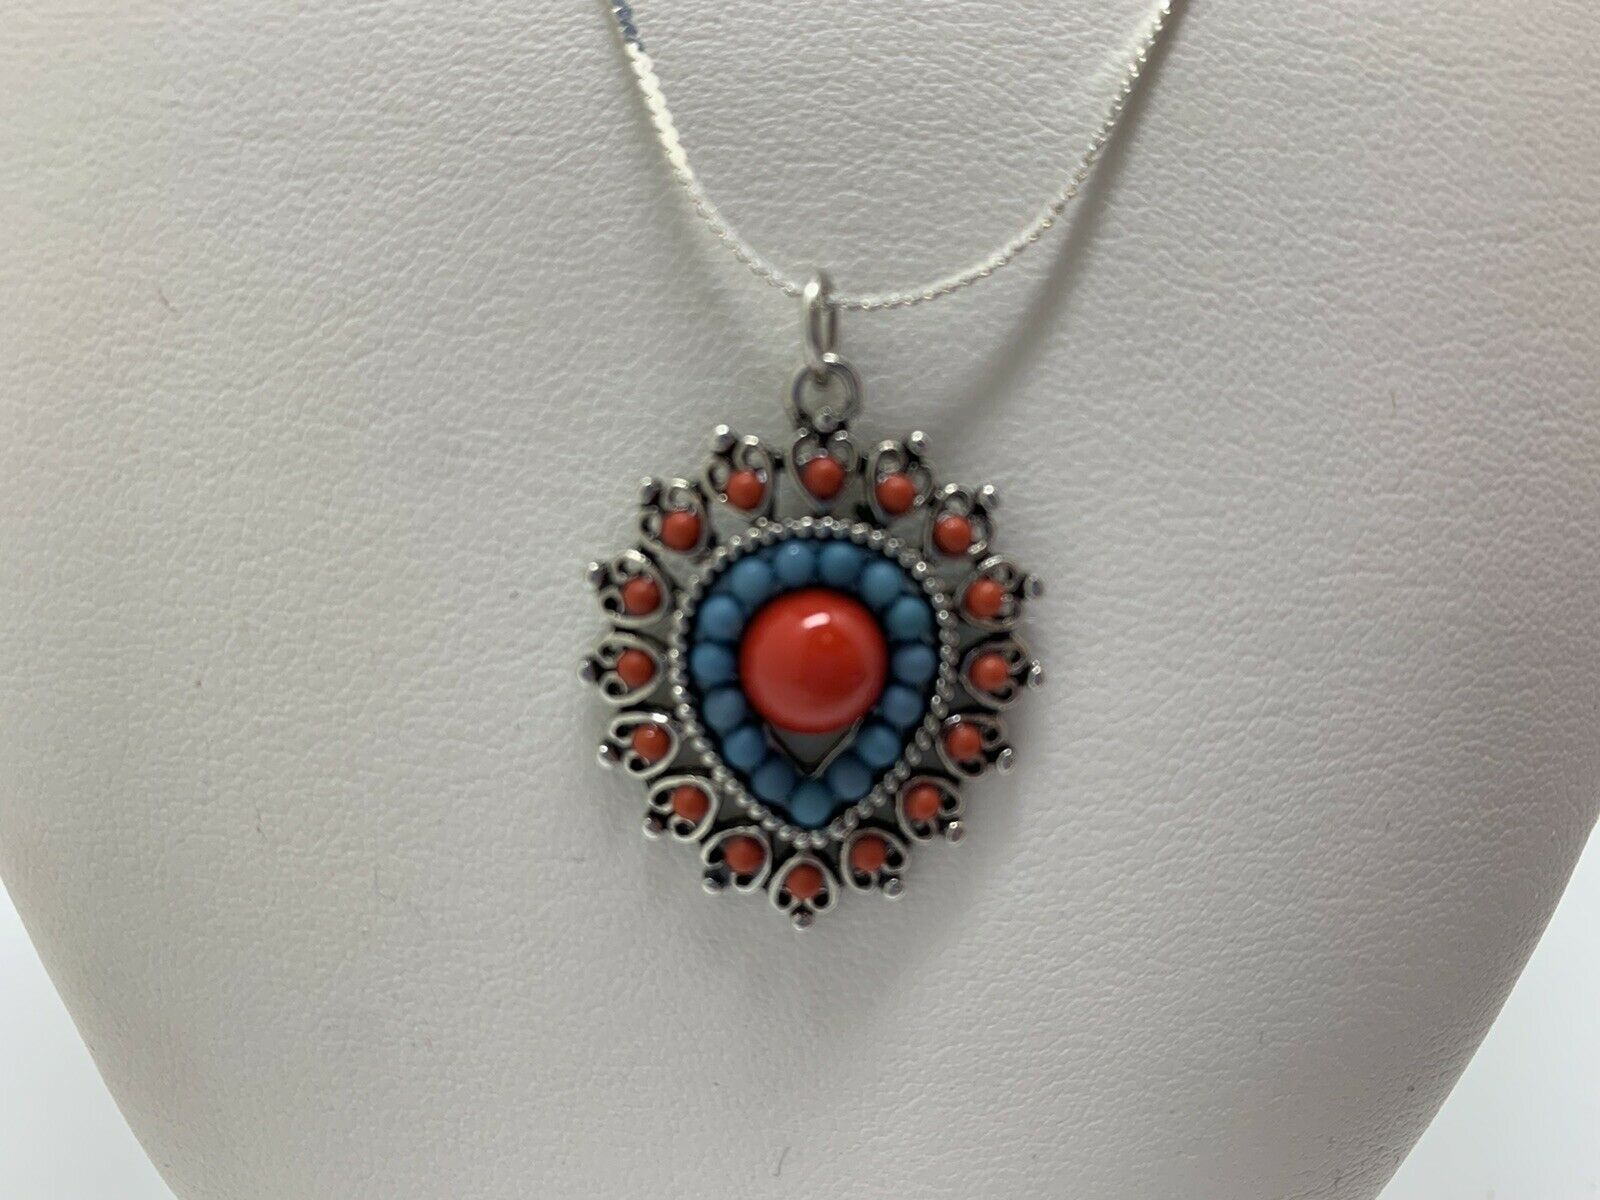 Rust Colored Beads /& Rhinestones on Silver Box Chain Necklace